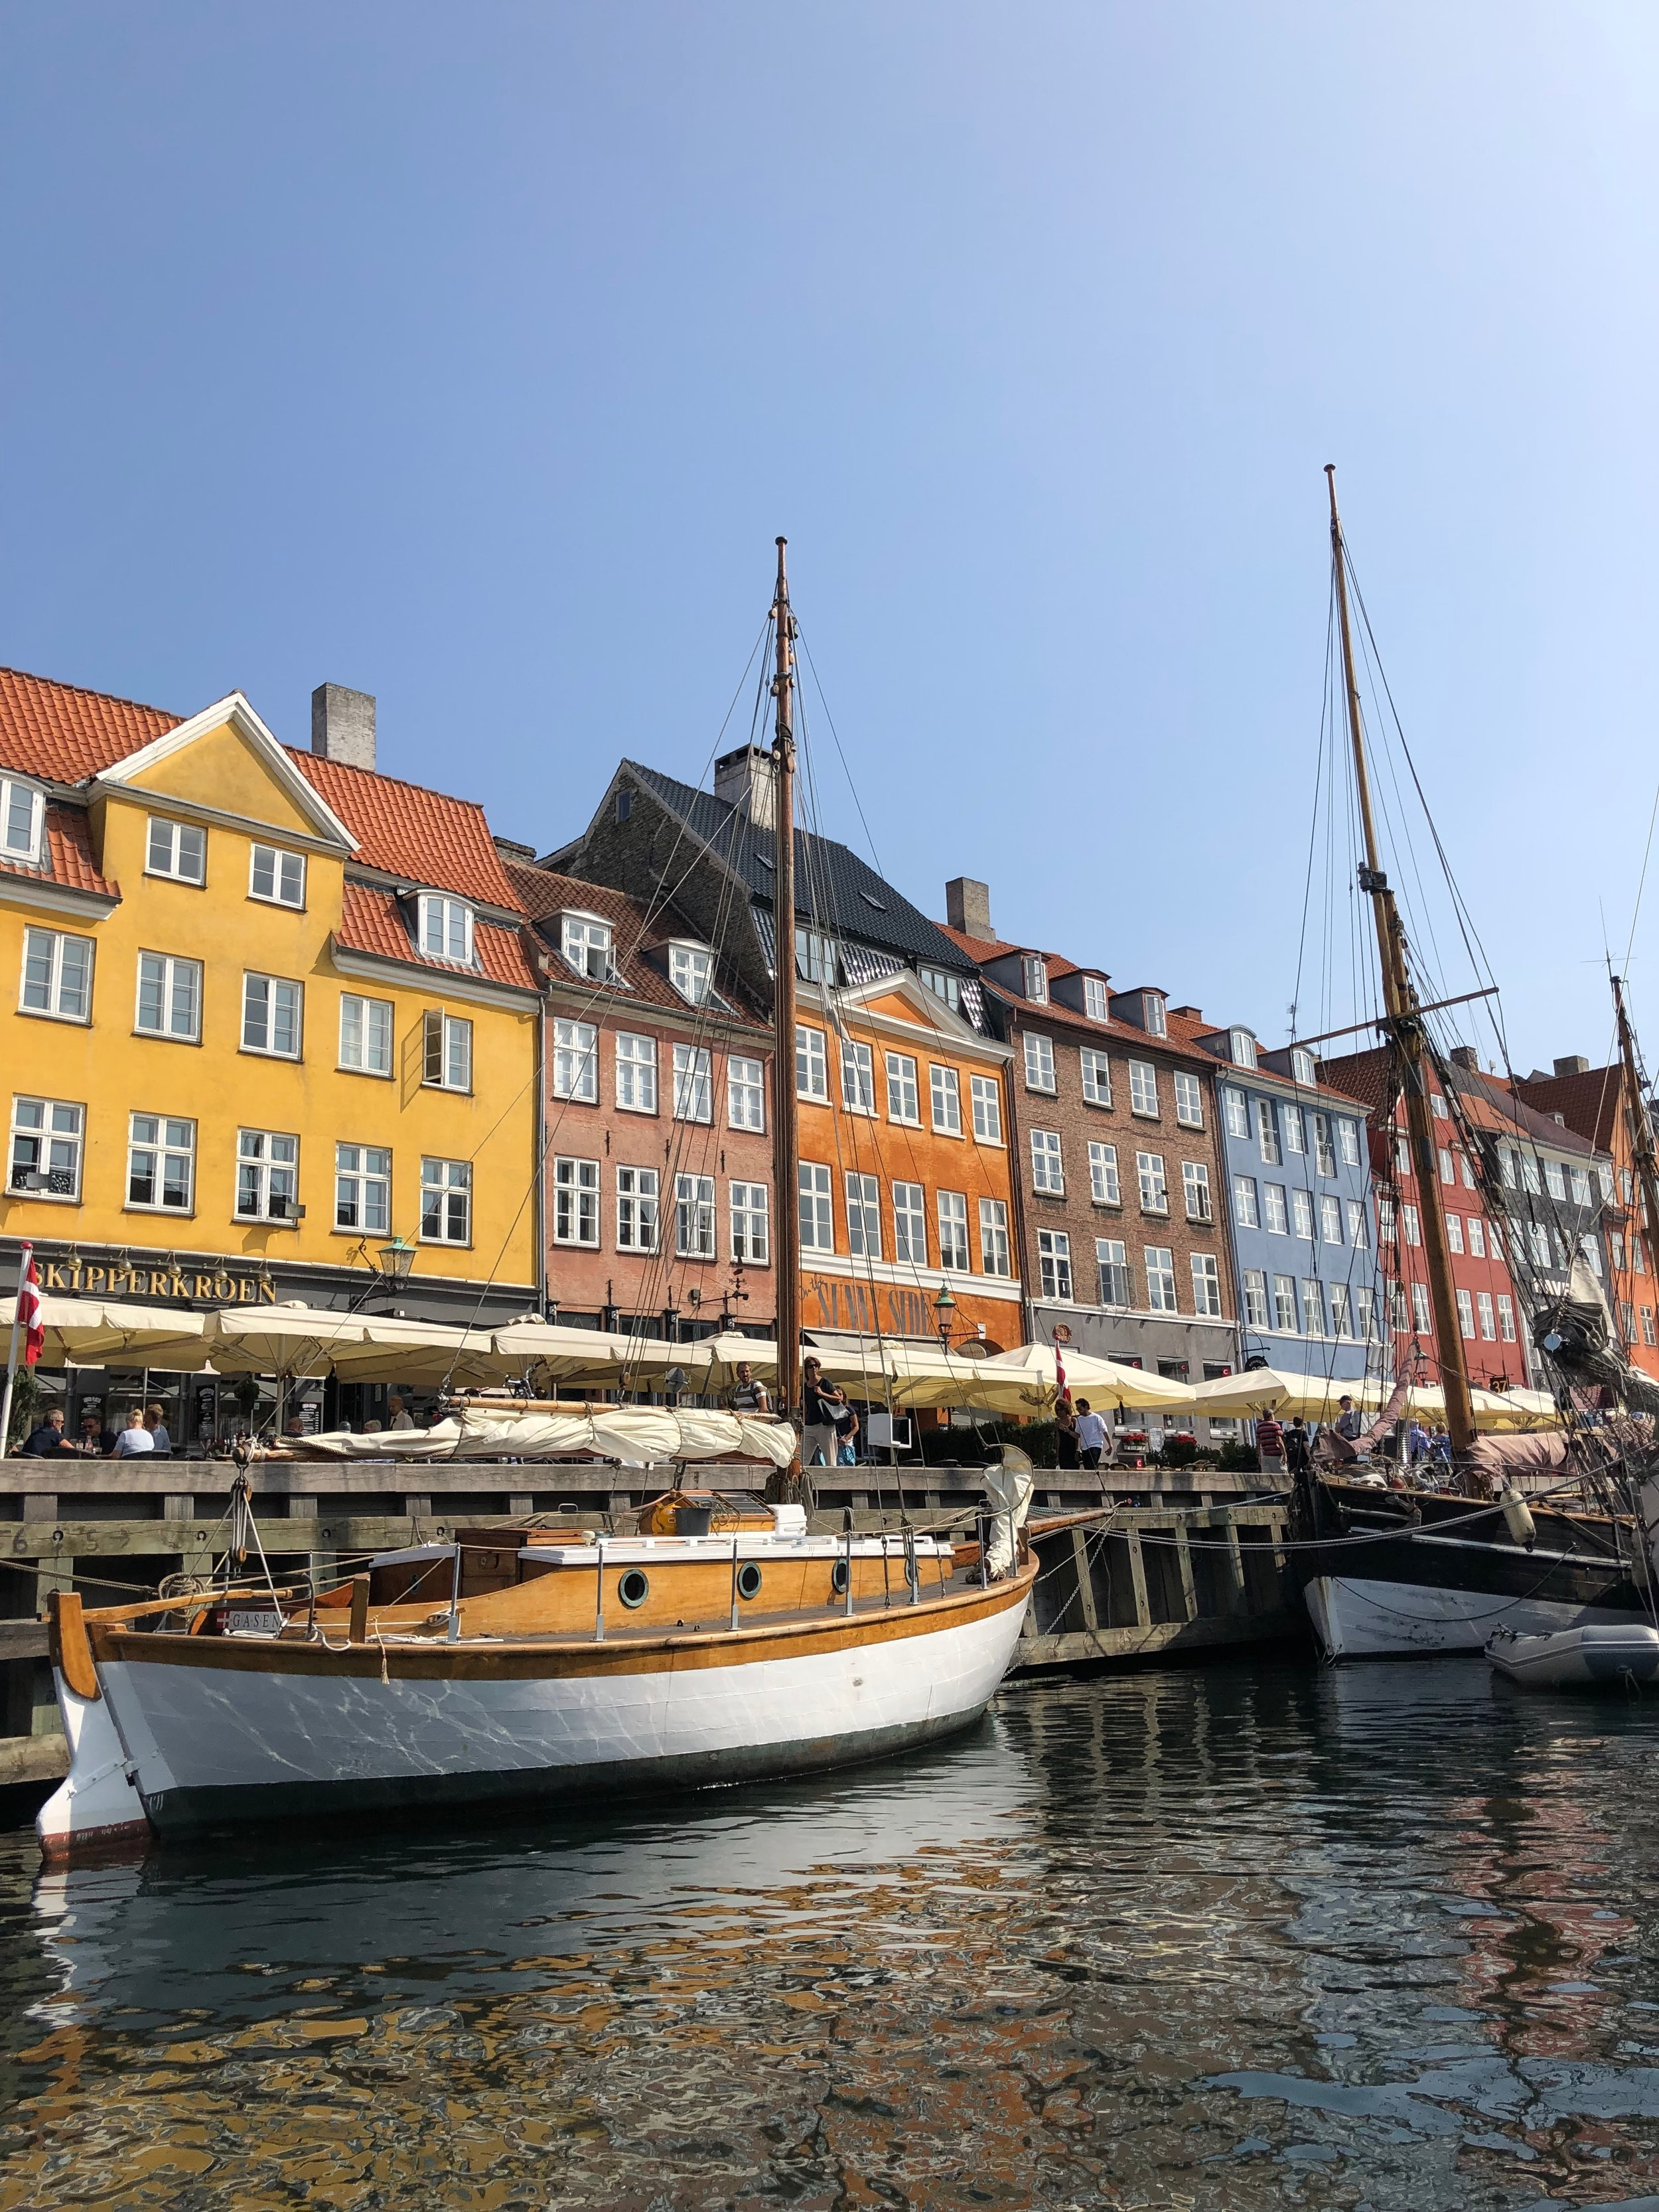 Nyhaven Canal: visit the colorful shops and restaurants